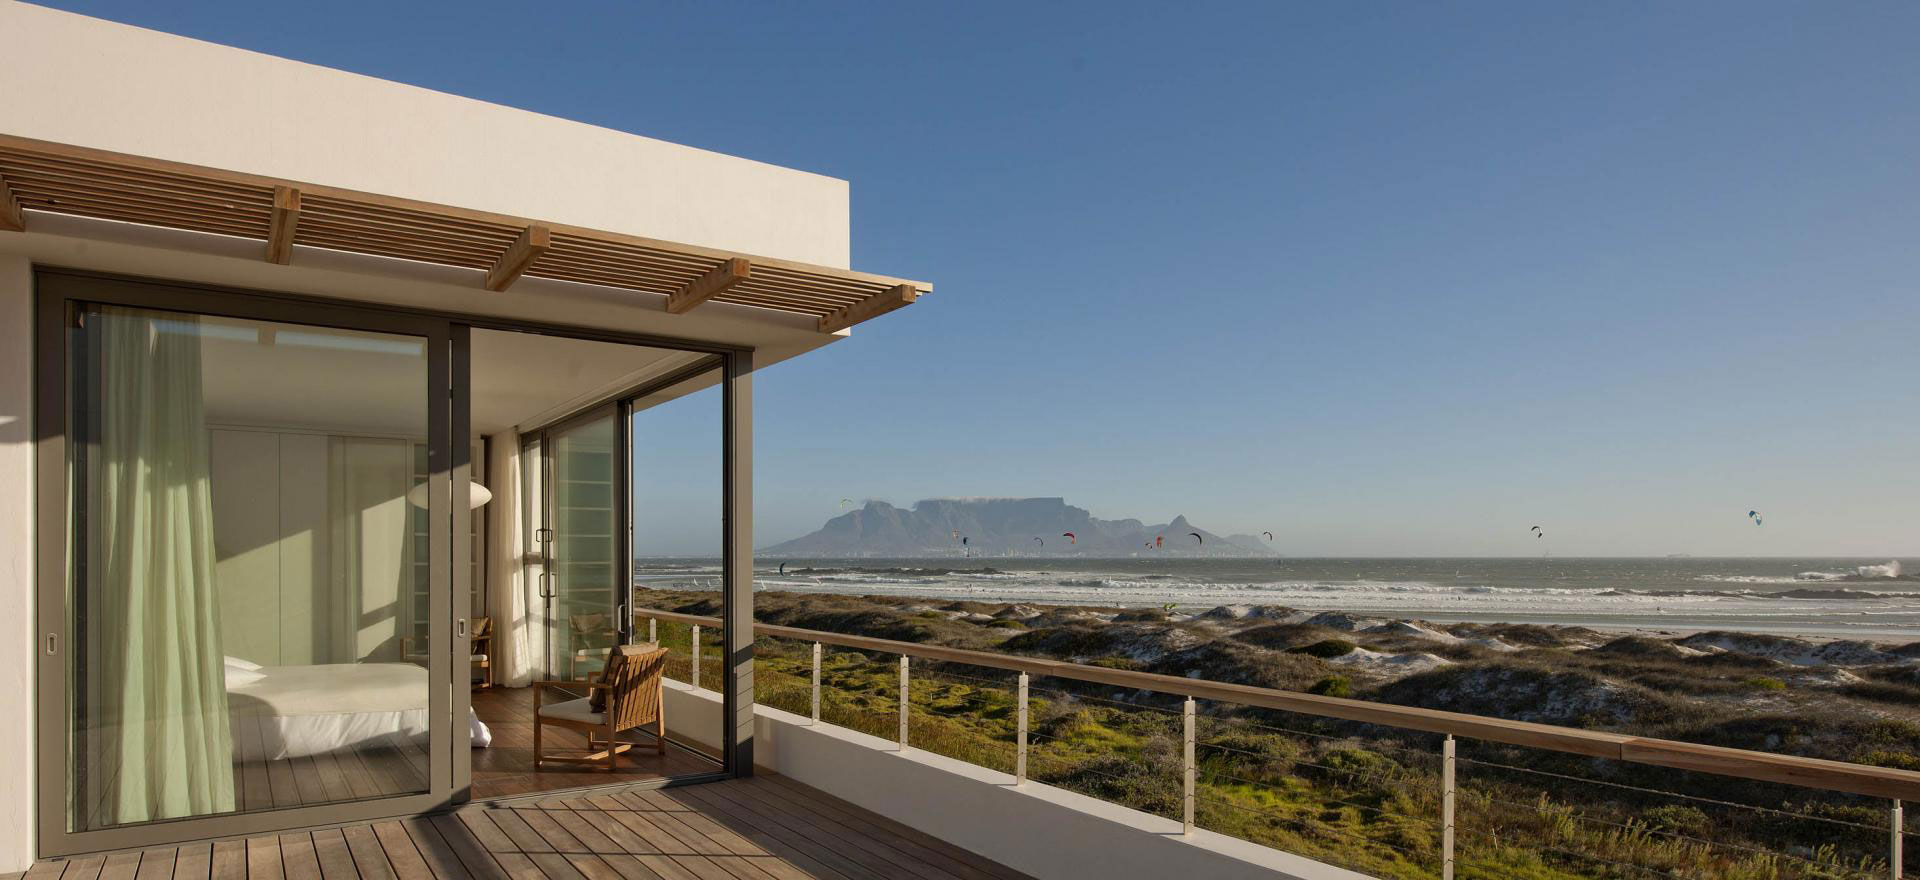 Bedroom, Roof Terrace, Patio Doors, Ocean Views, Beach Front Home in Cape Town, South Africa